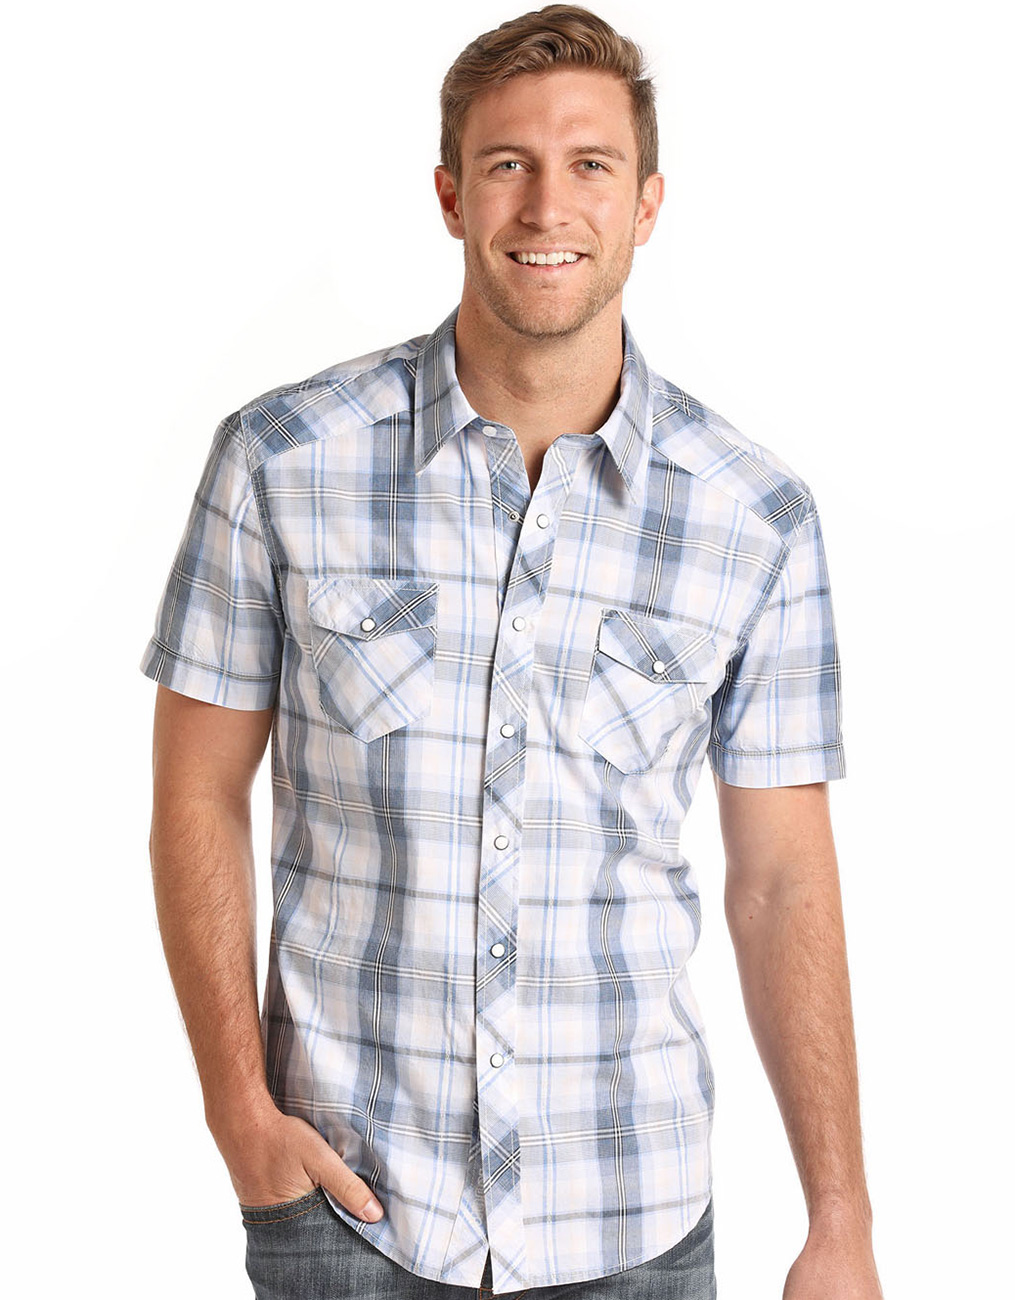 a7f08d1f Mens Panhandle Slim Short Sleeve Shirts - Cotswold Hire